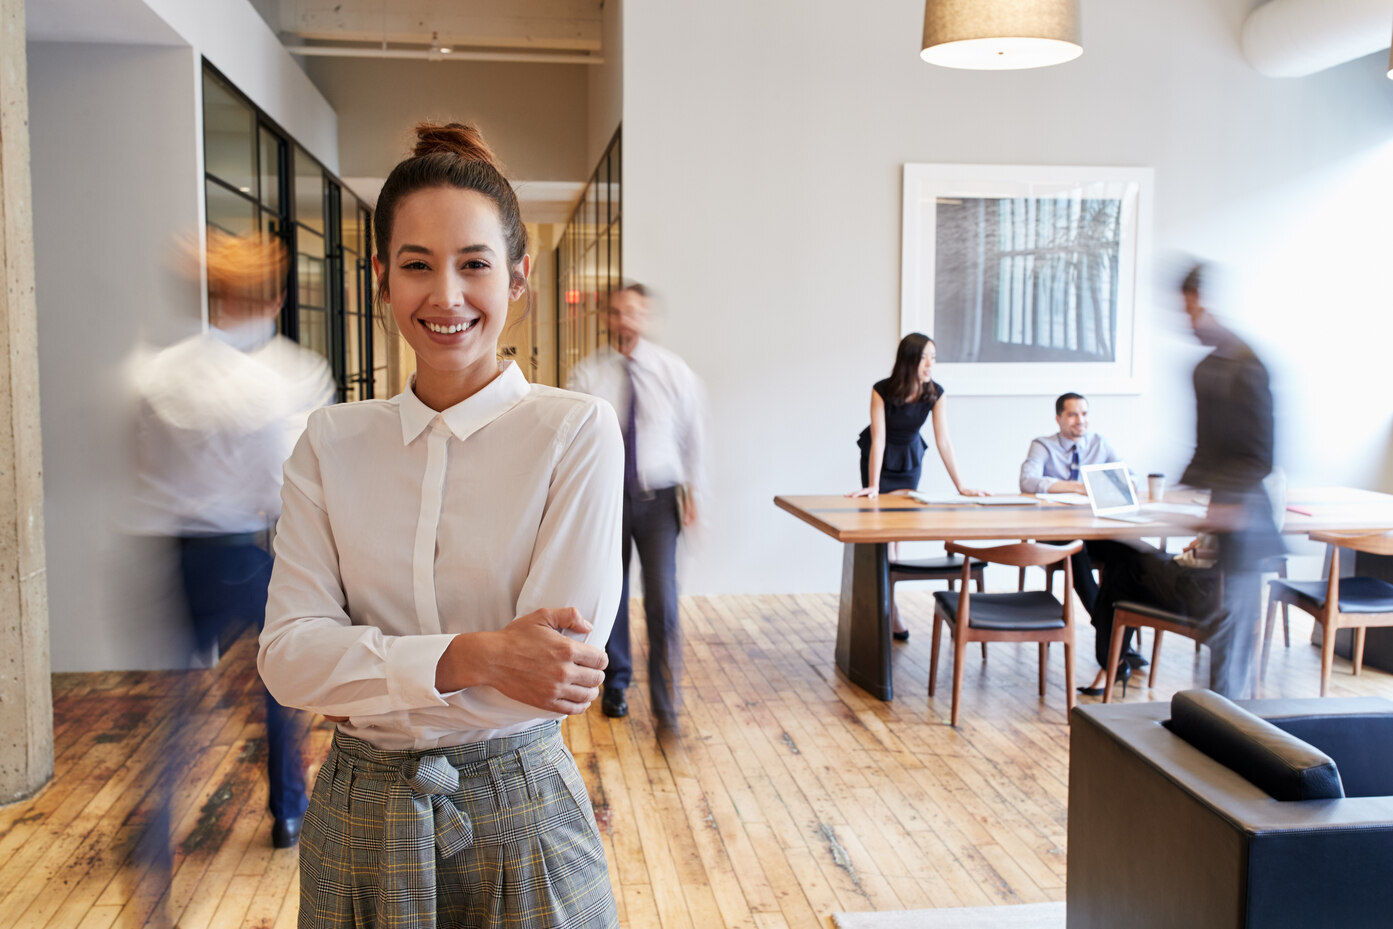 smiling-lady-in-office-environment